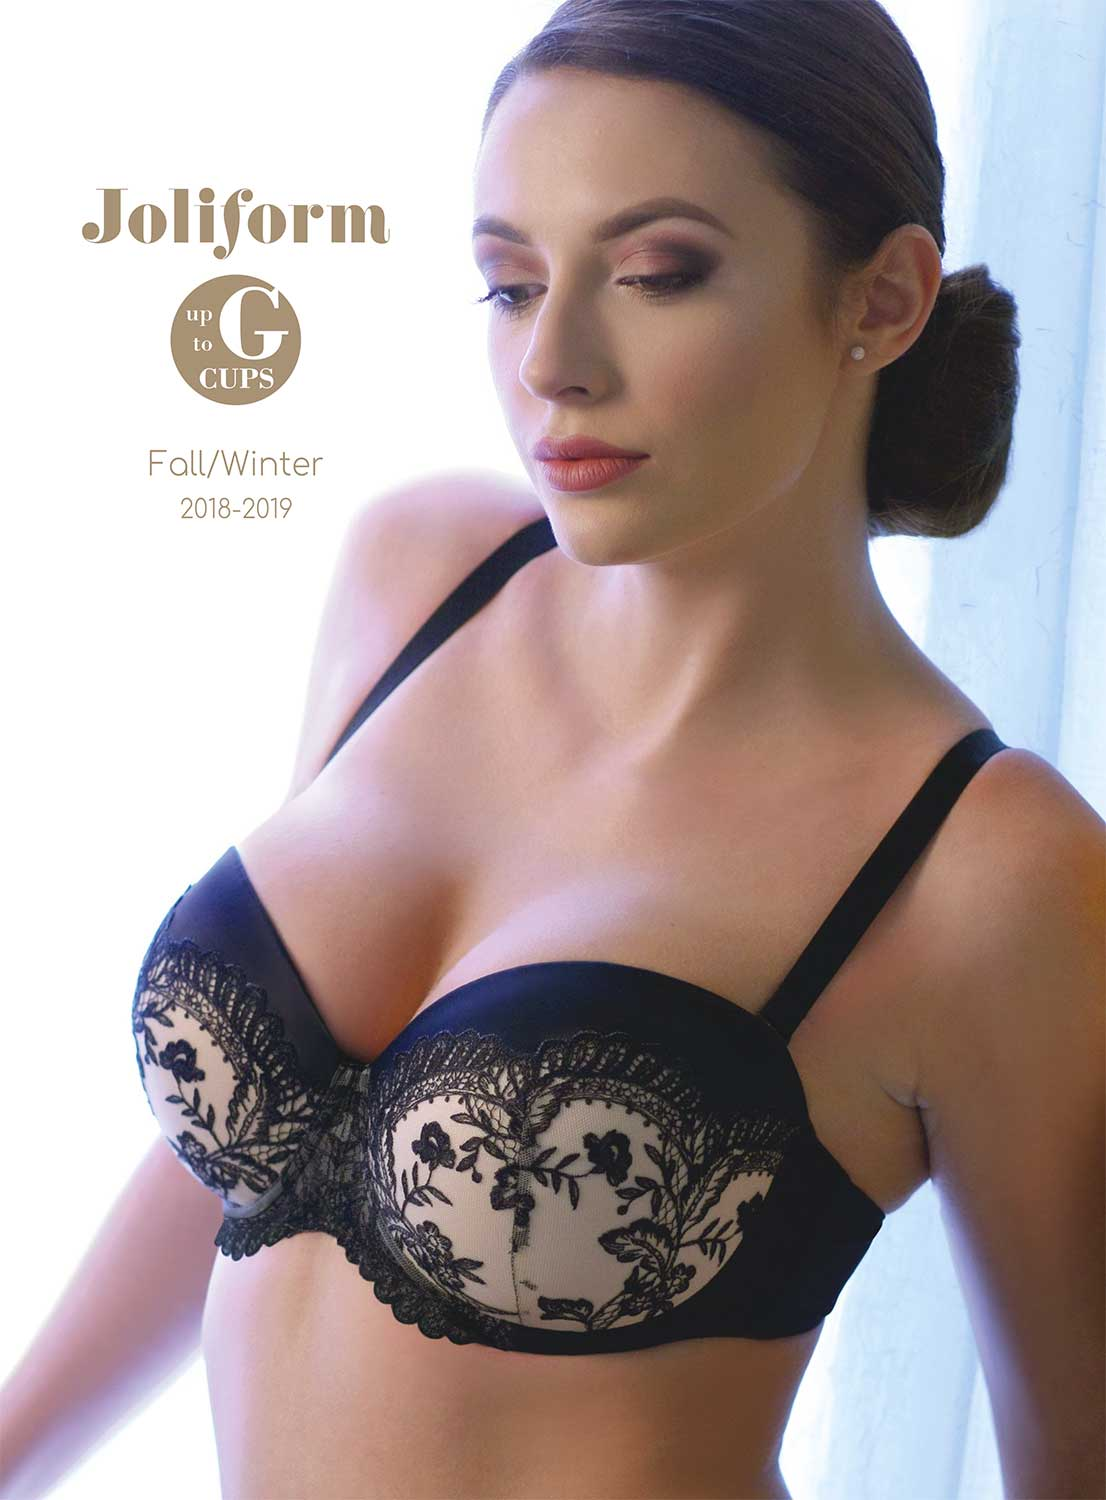 JOLIFORM FALL WINTER 2018/19